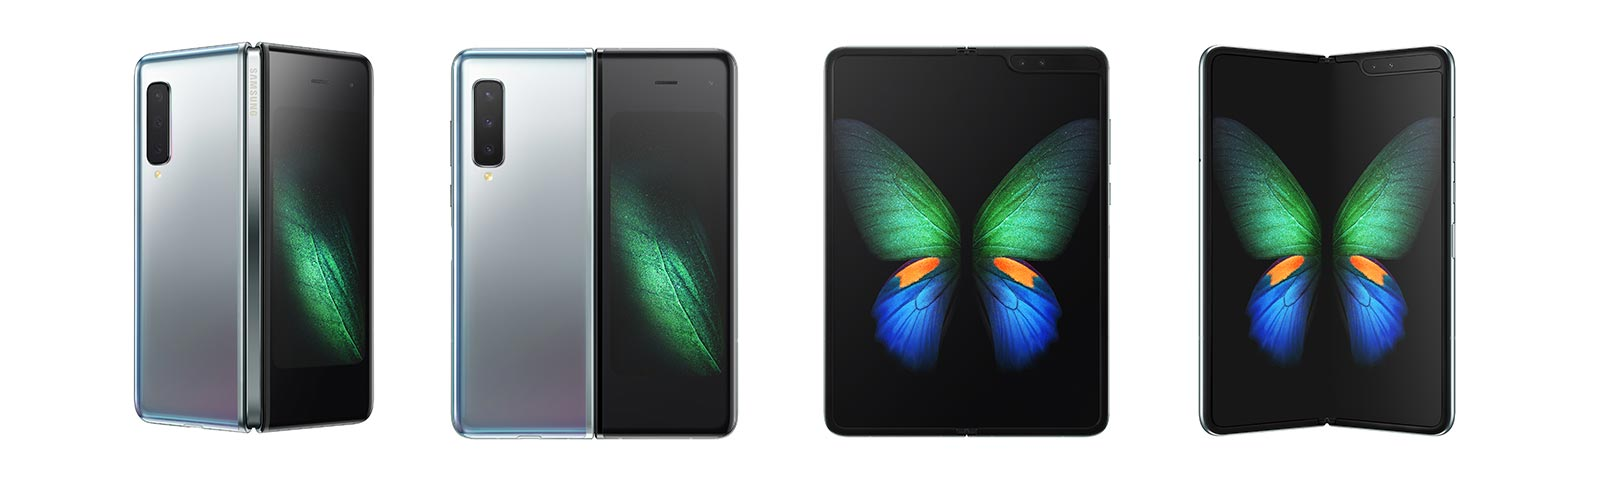 Samsung releases the Galaxy Fold and Galaxy Fold 5G